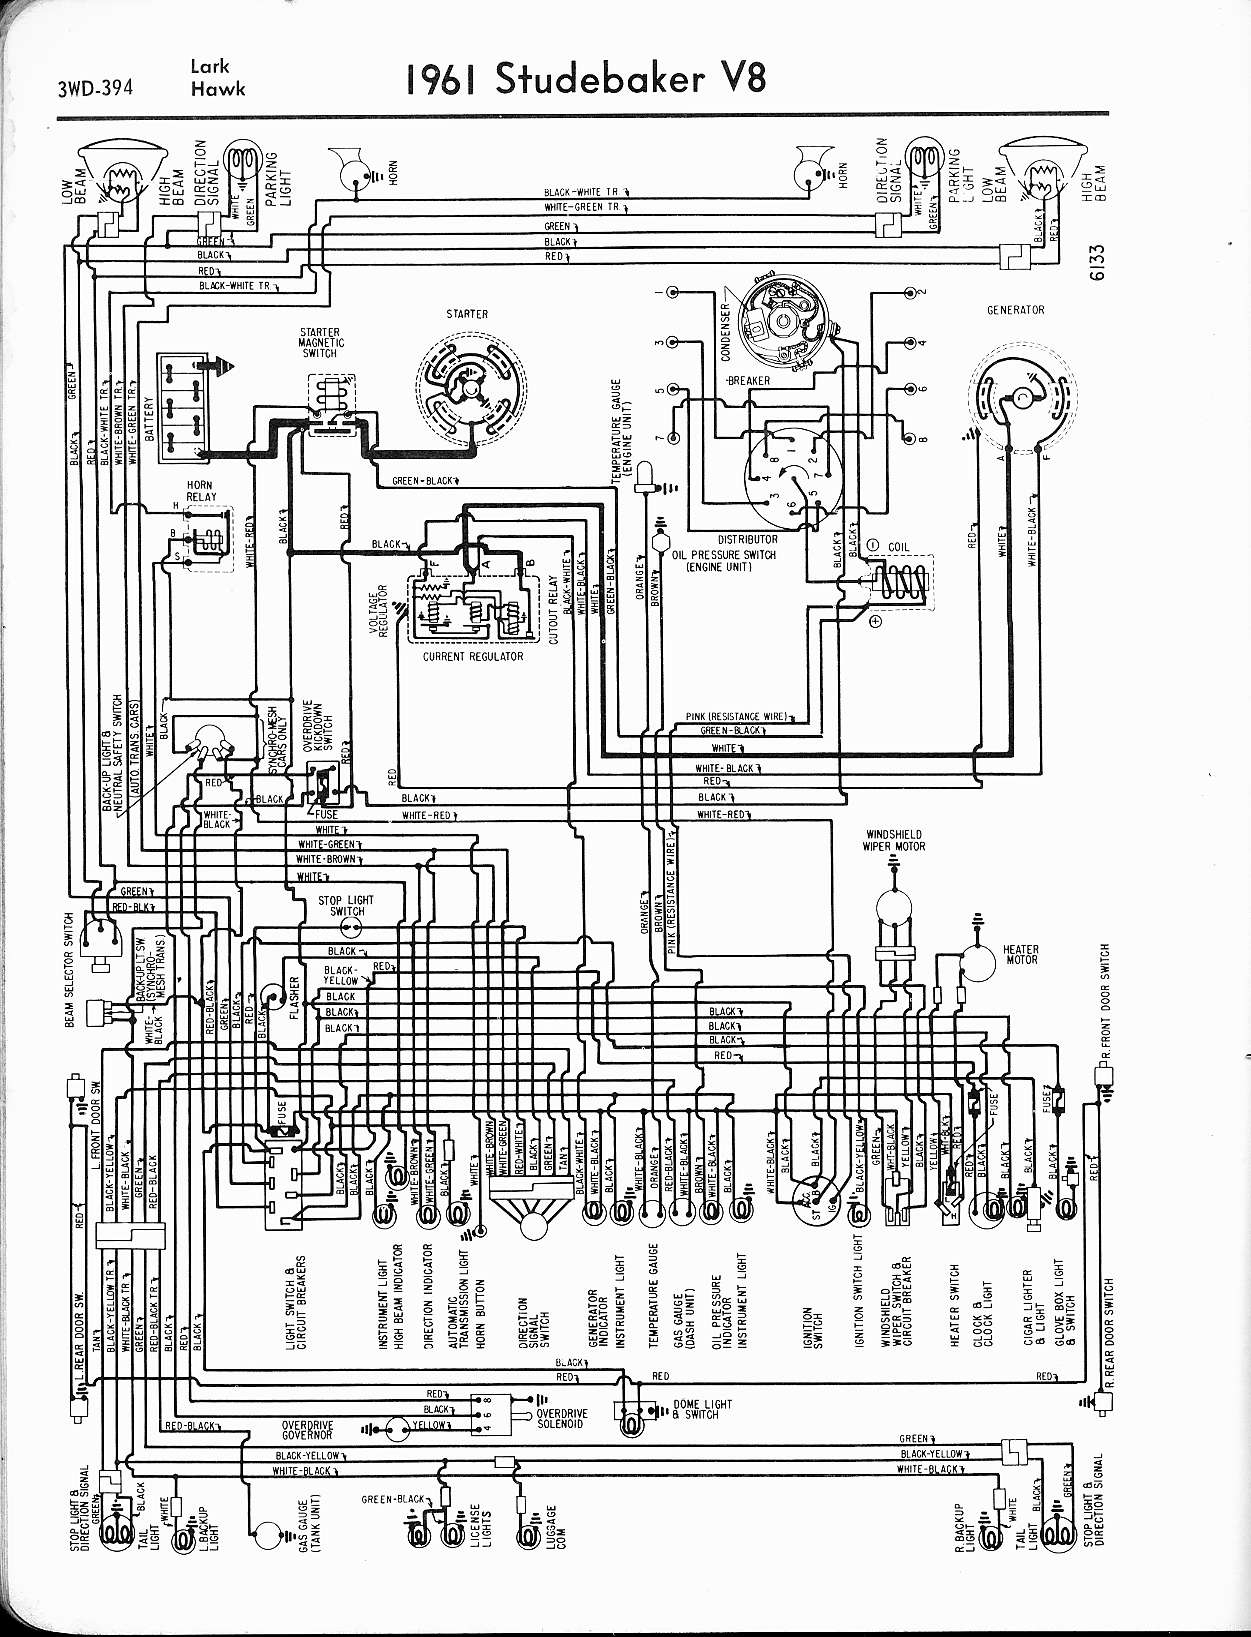 international trucks wiring diagrams international trucks wiring diagrams free international truck wiring diagram manual | free wiring ... #1